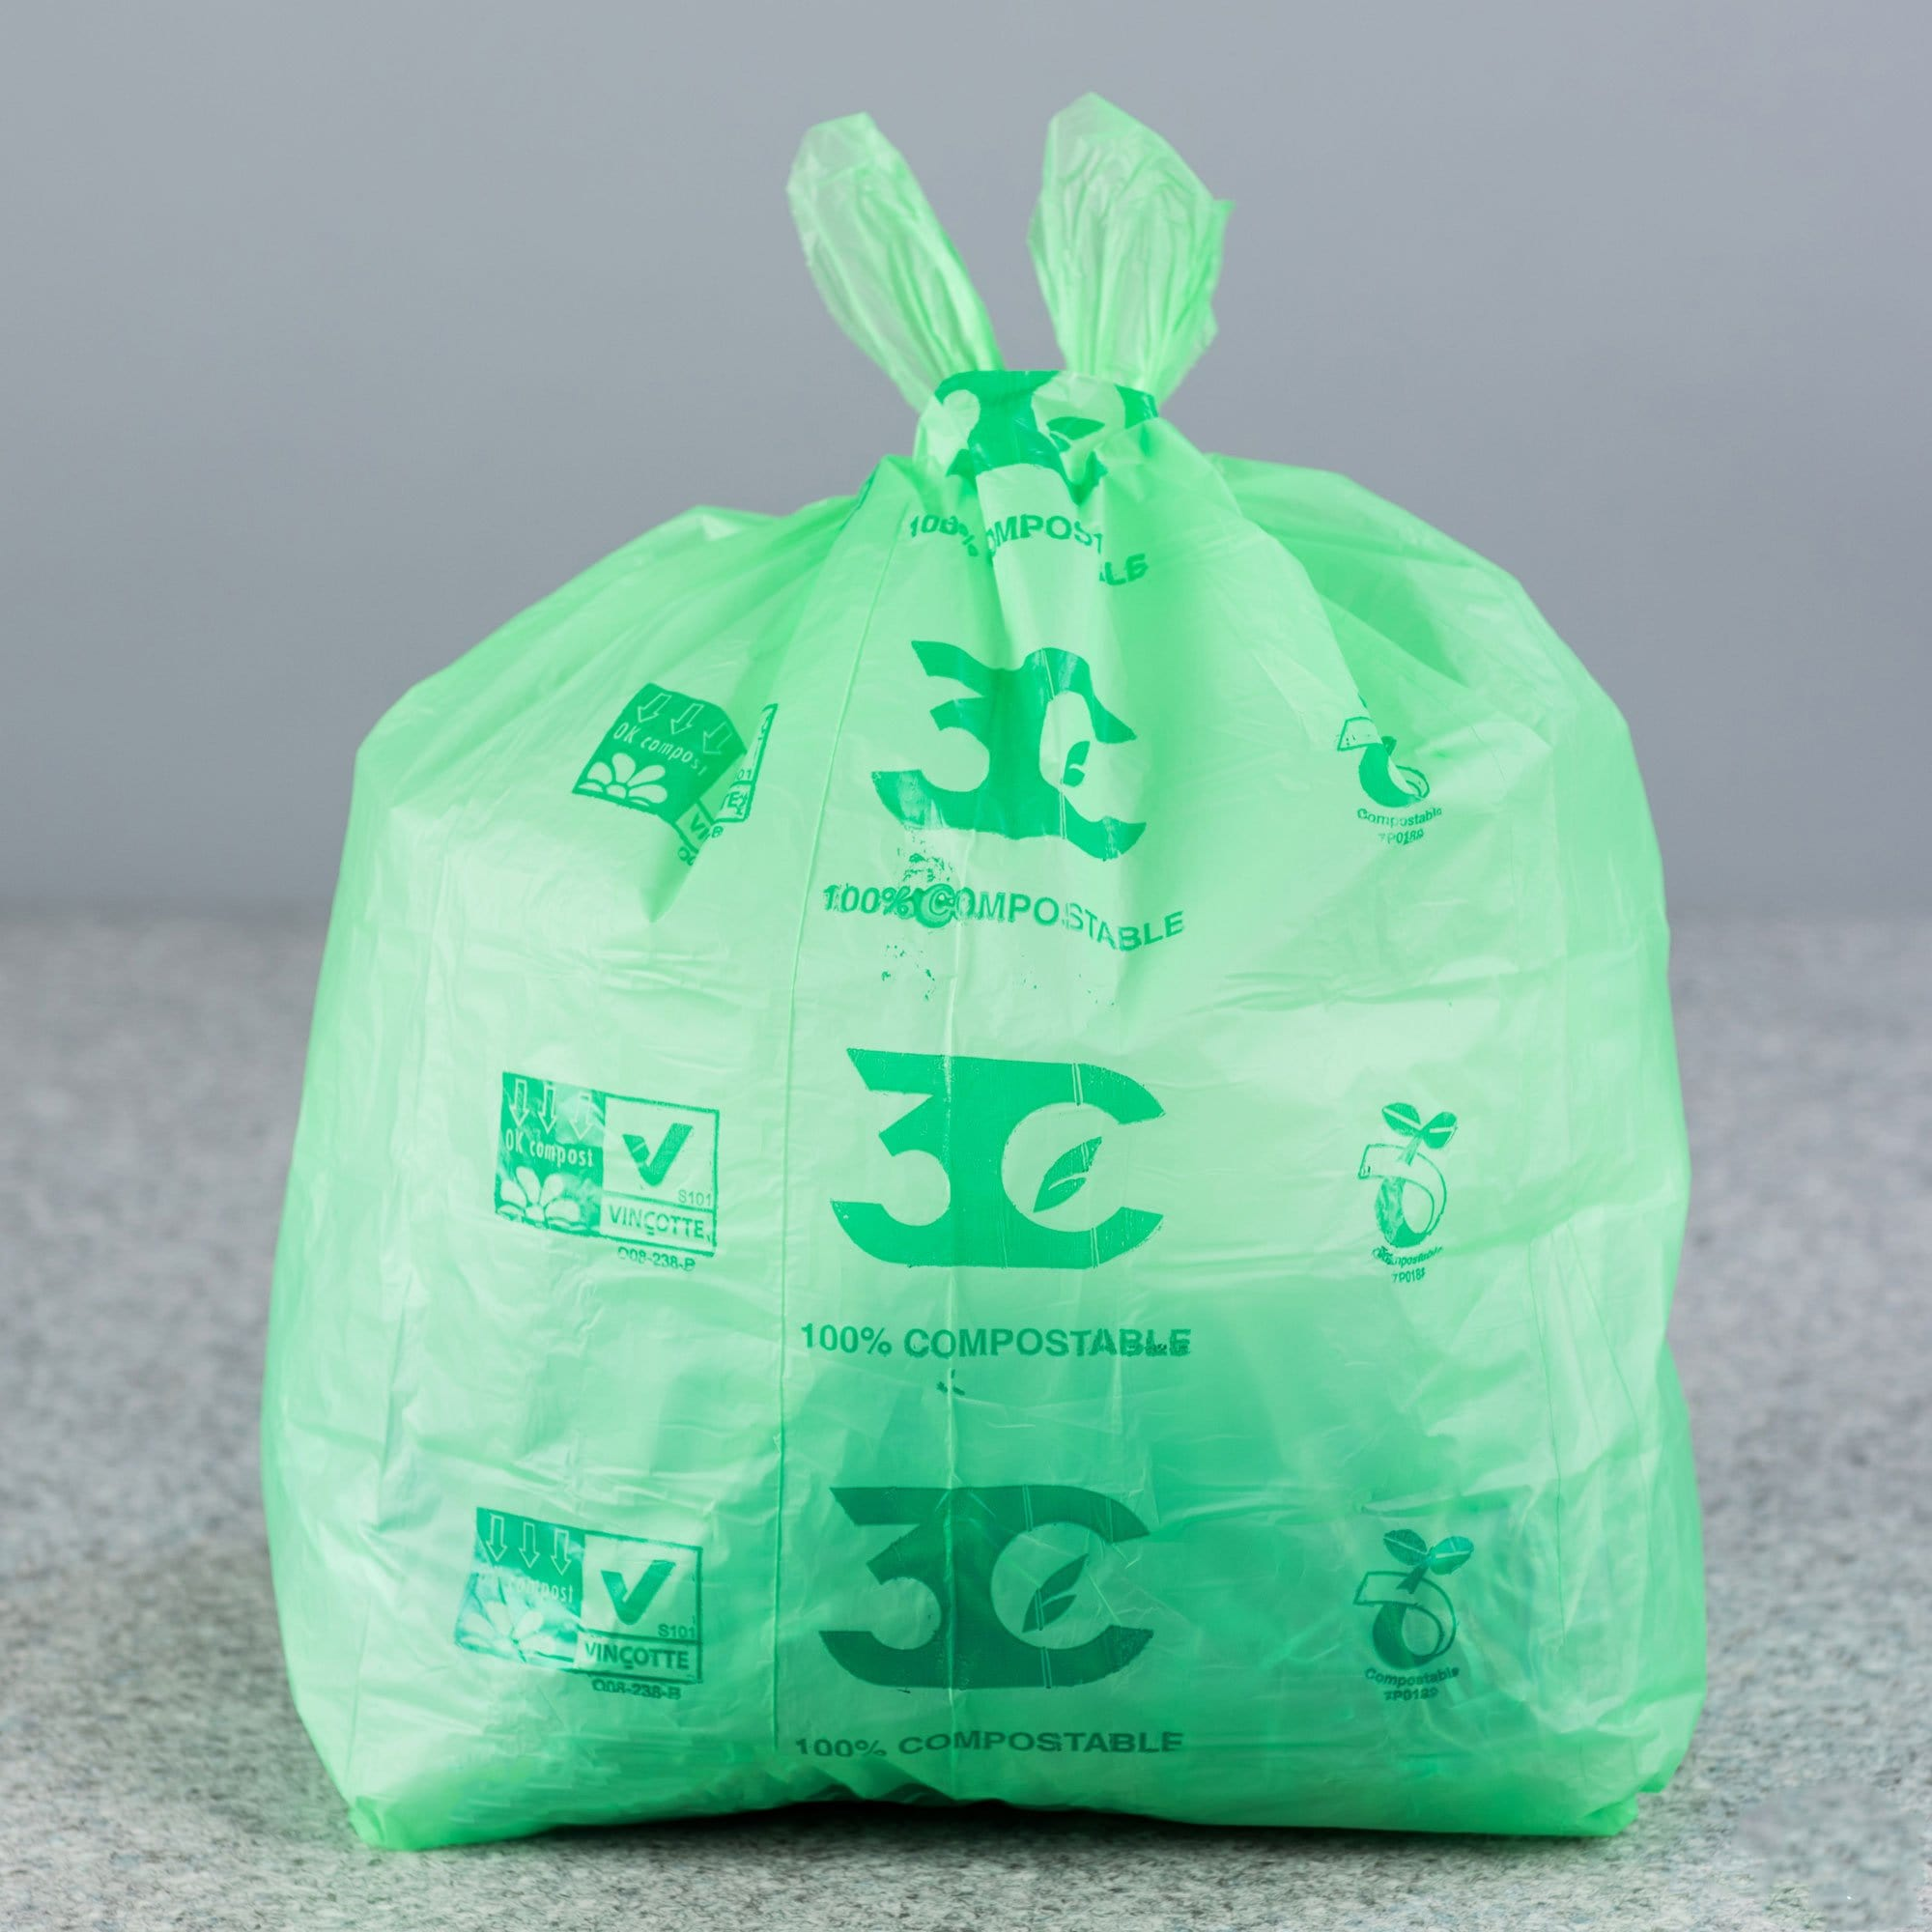 Caddy Bin Liners - Compostable - NaturePac